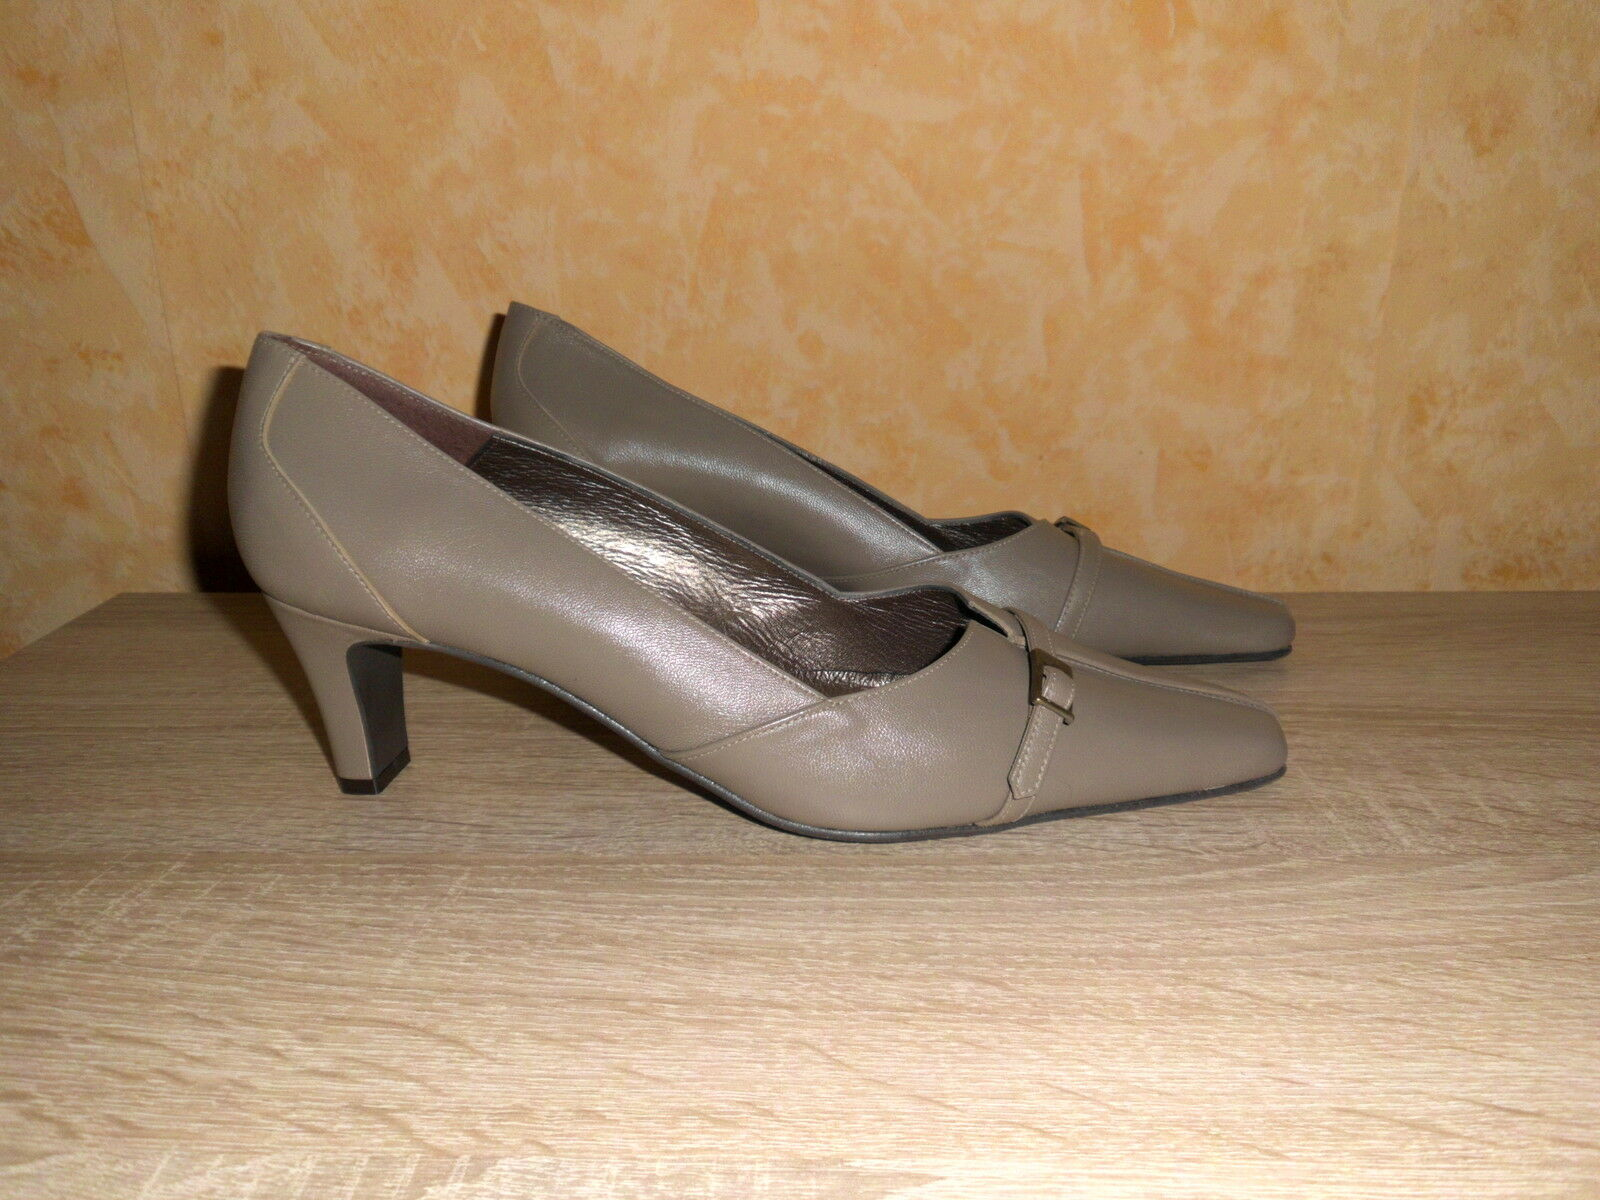 Feminine Pumps by UNO DUE TRE New Size 42 F in Taupe & Nappa Leather Watch